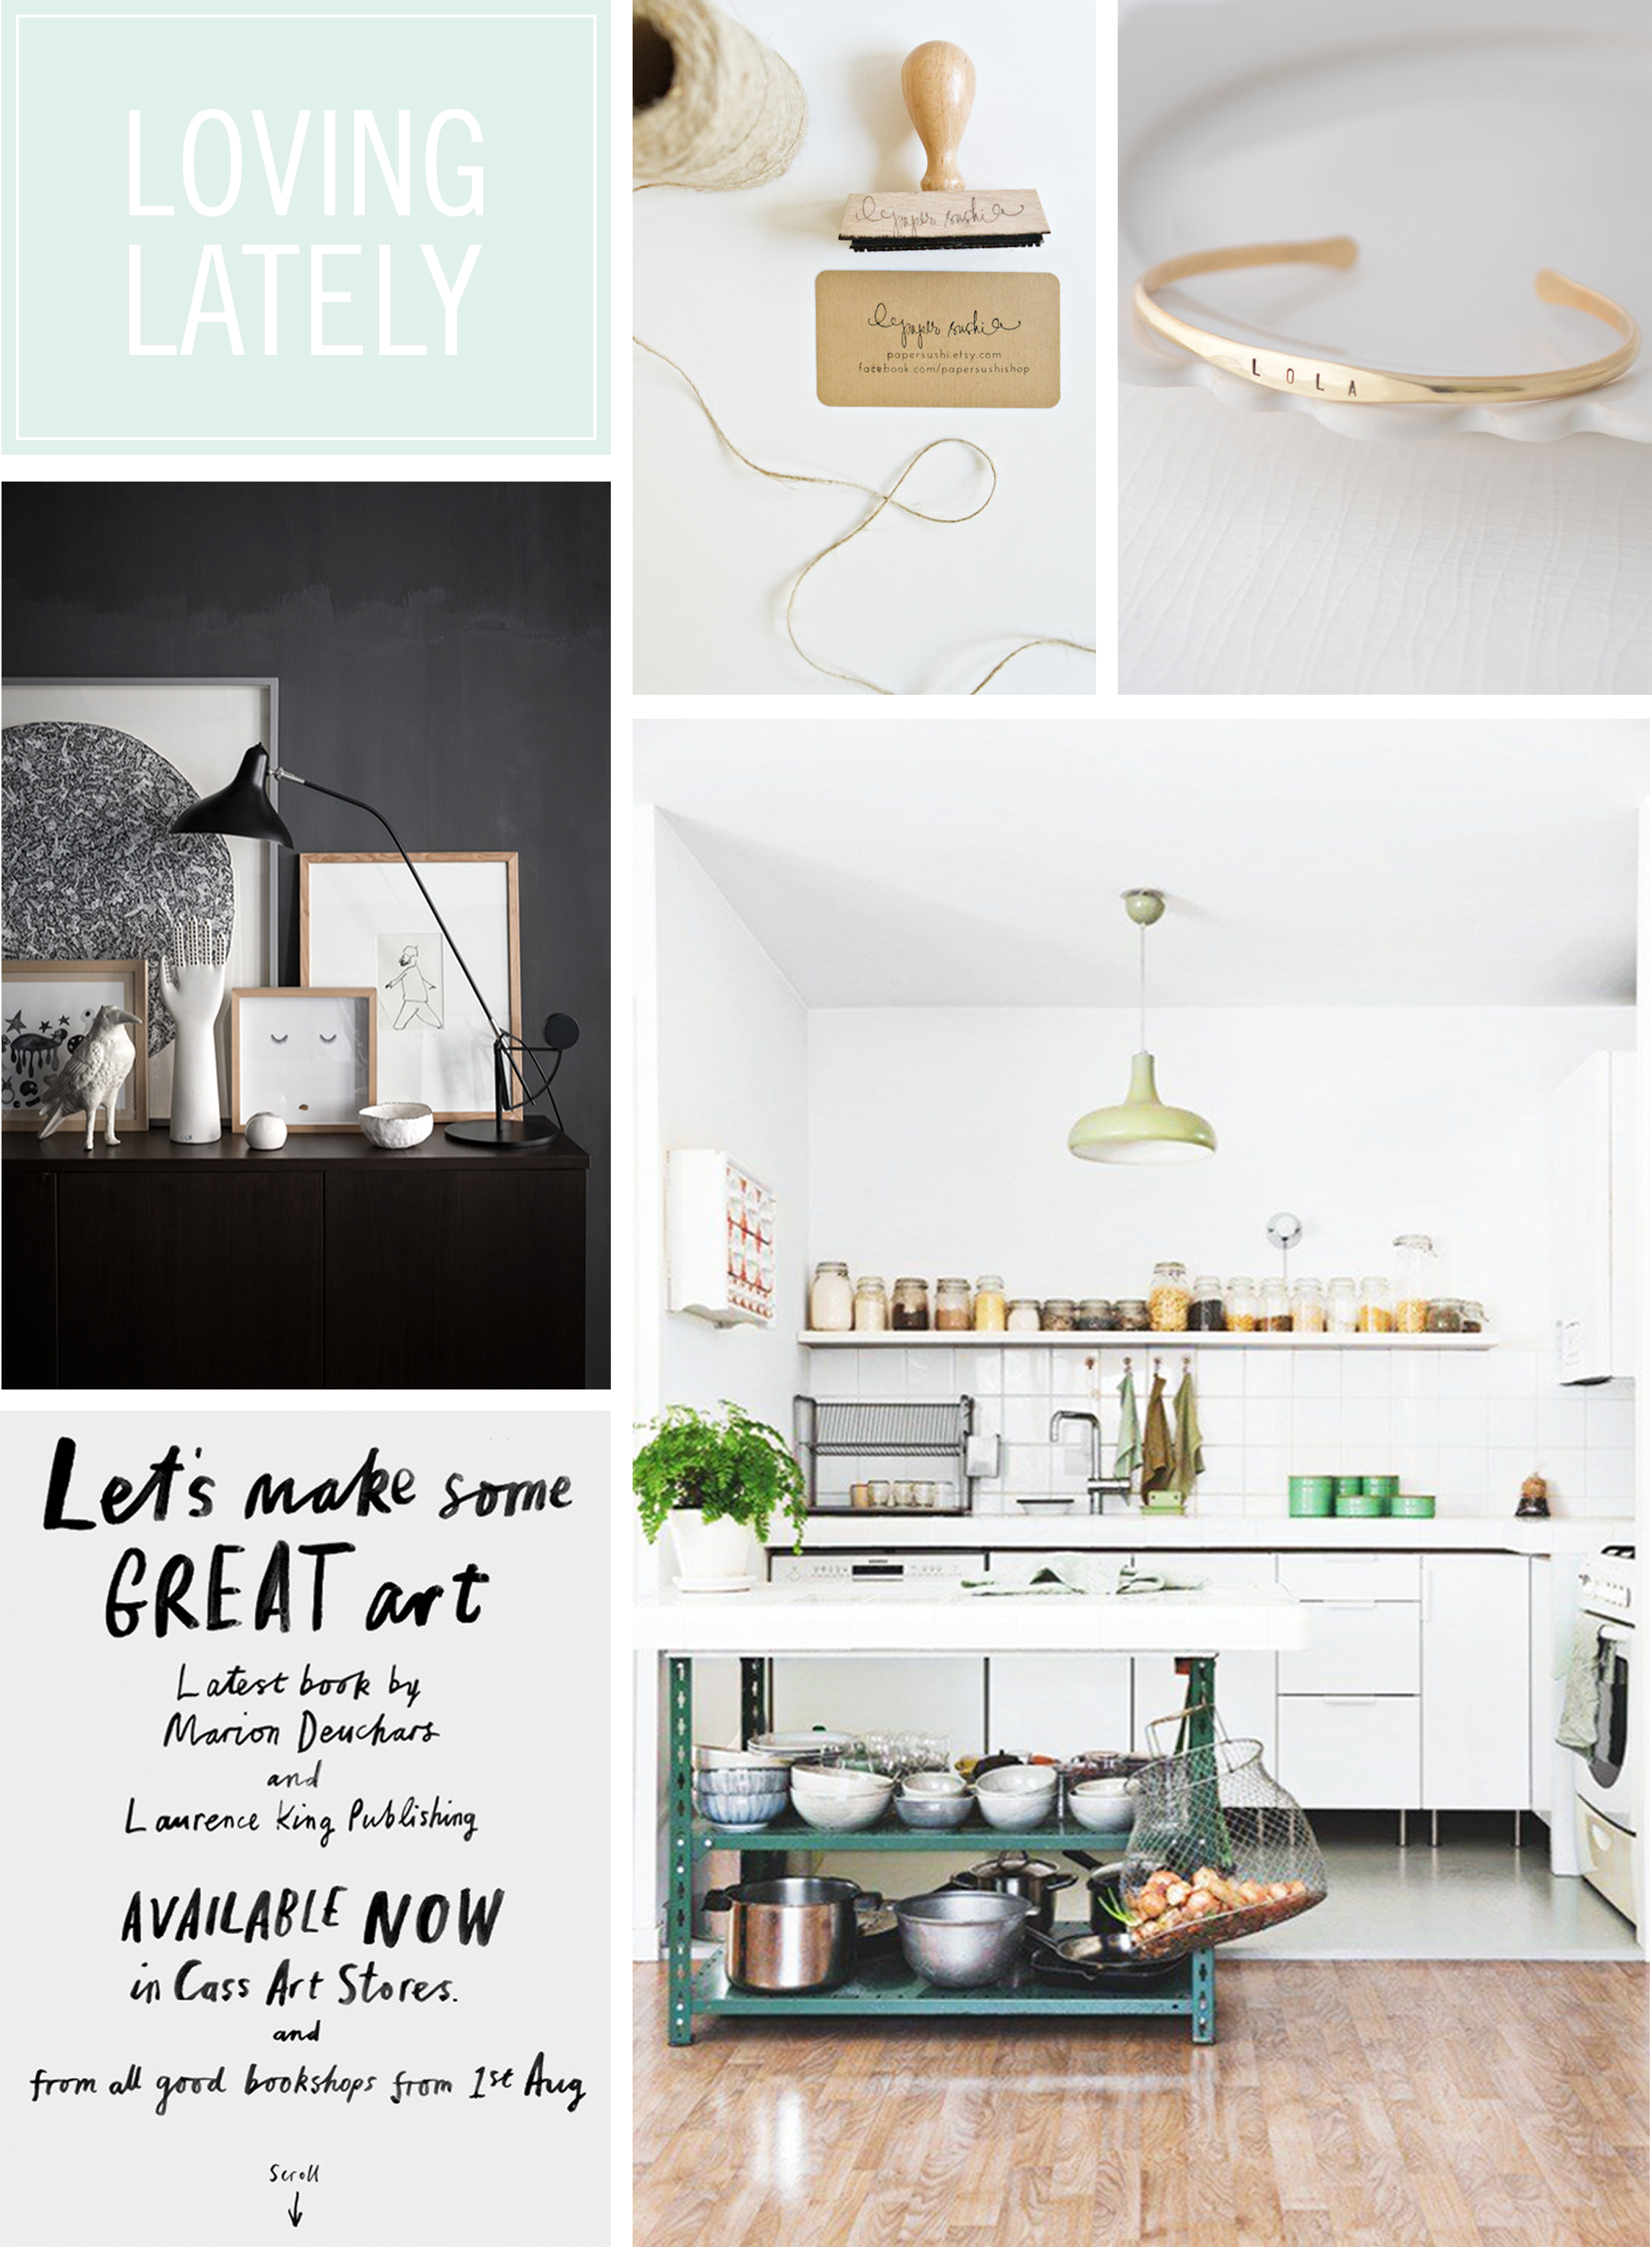 business card stamp by  paper sushi / gold name bracelet by  olive yew jewels / black home by  romain ricard  / let's make some great art by  marion deuchars &  laurence king / a london cottage by  sf girl by bay